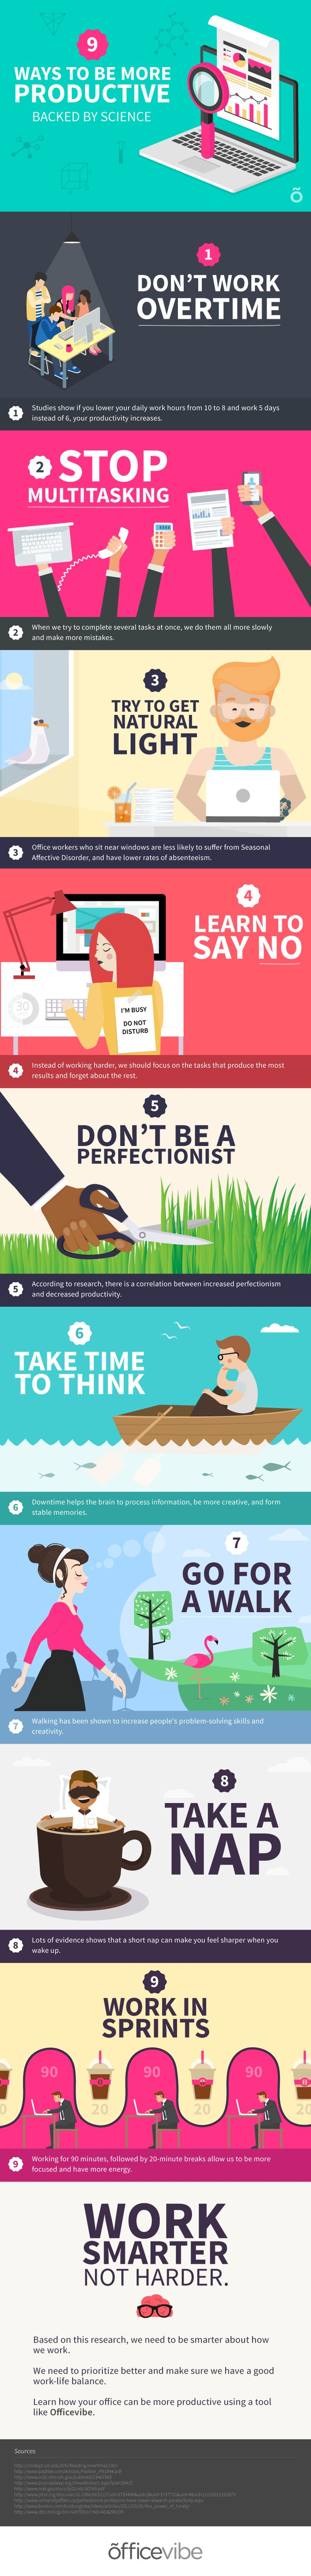 How to Increase Productivity at Work Infographic - http://elearninginfographics.com/increase-productivity-work-infographic/